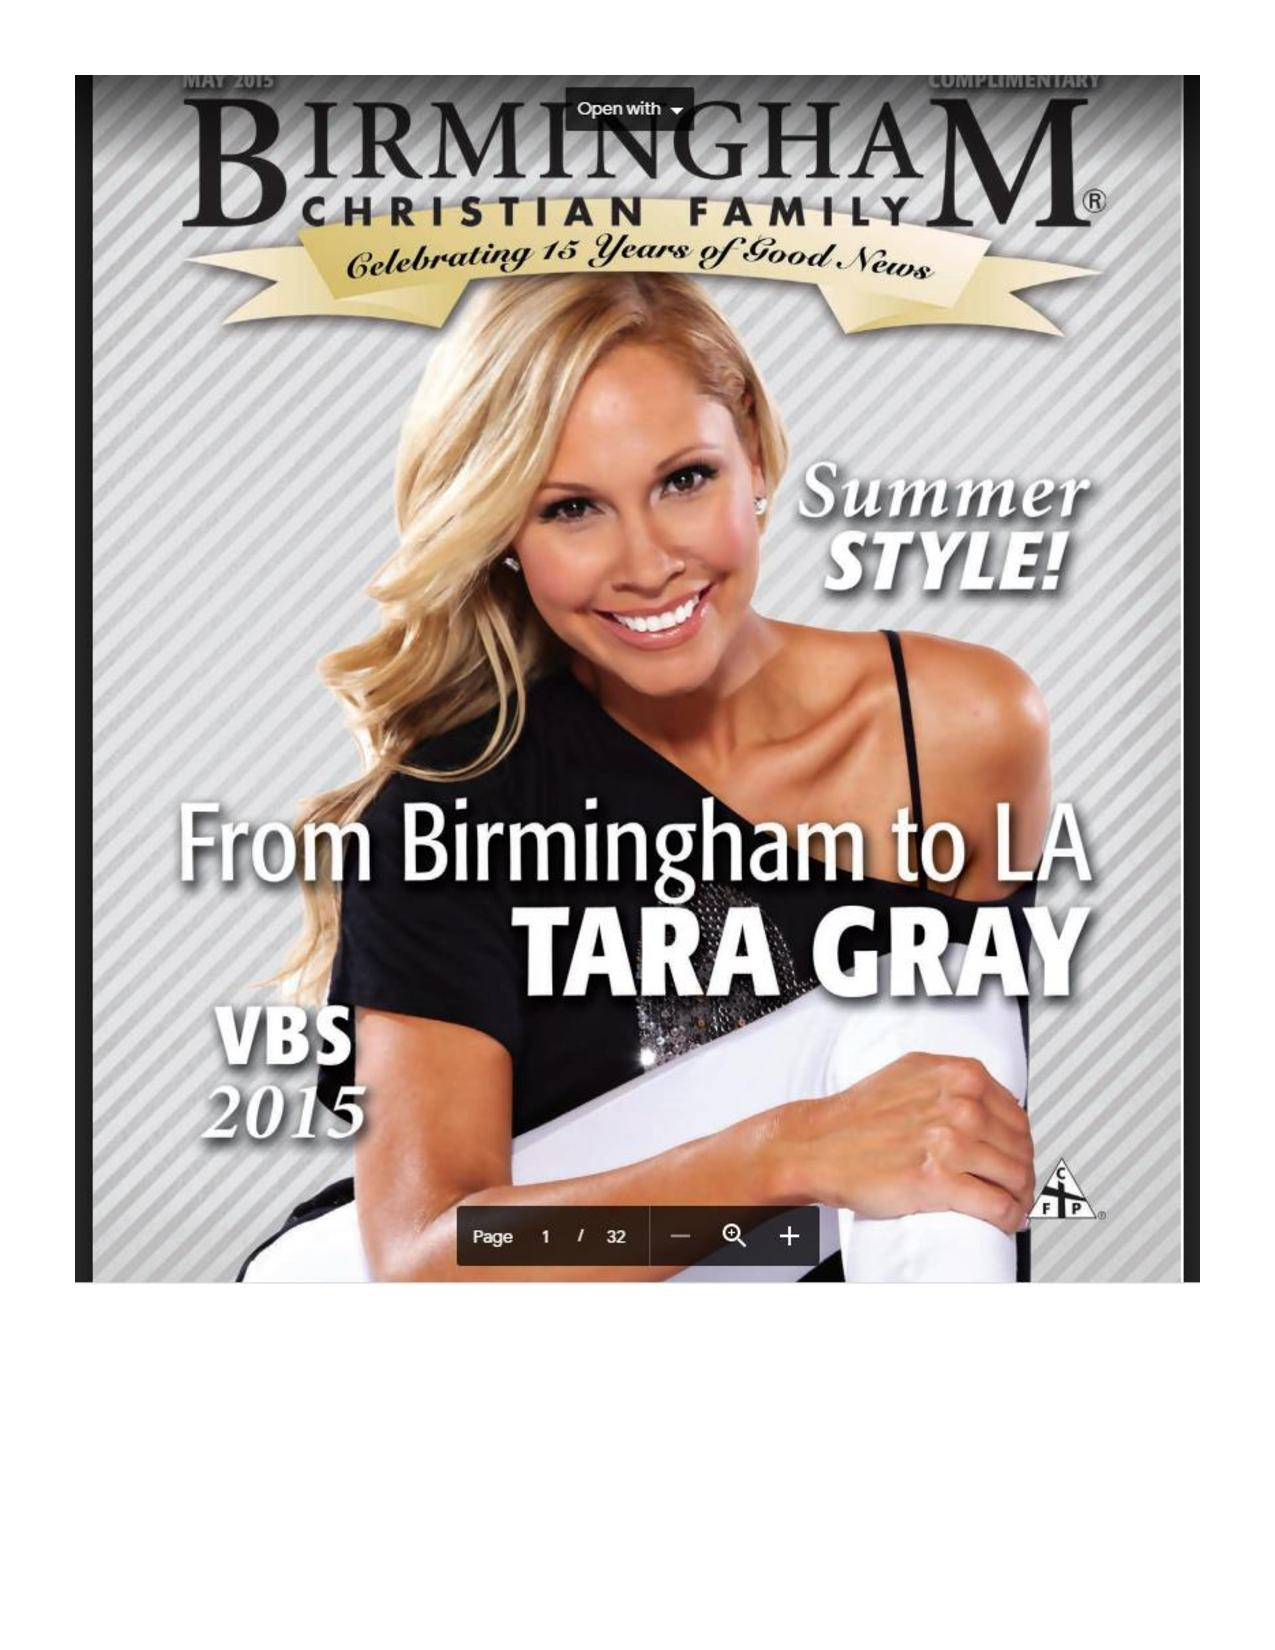 From Birmingham To LA...Tara Gray! Taking Risks And Leaning On Faith-1